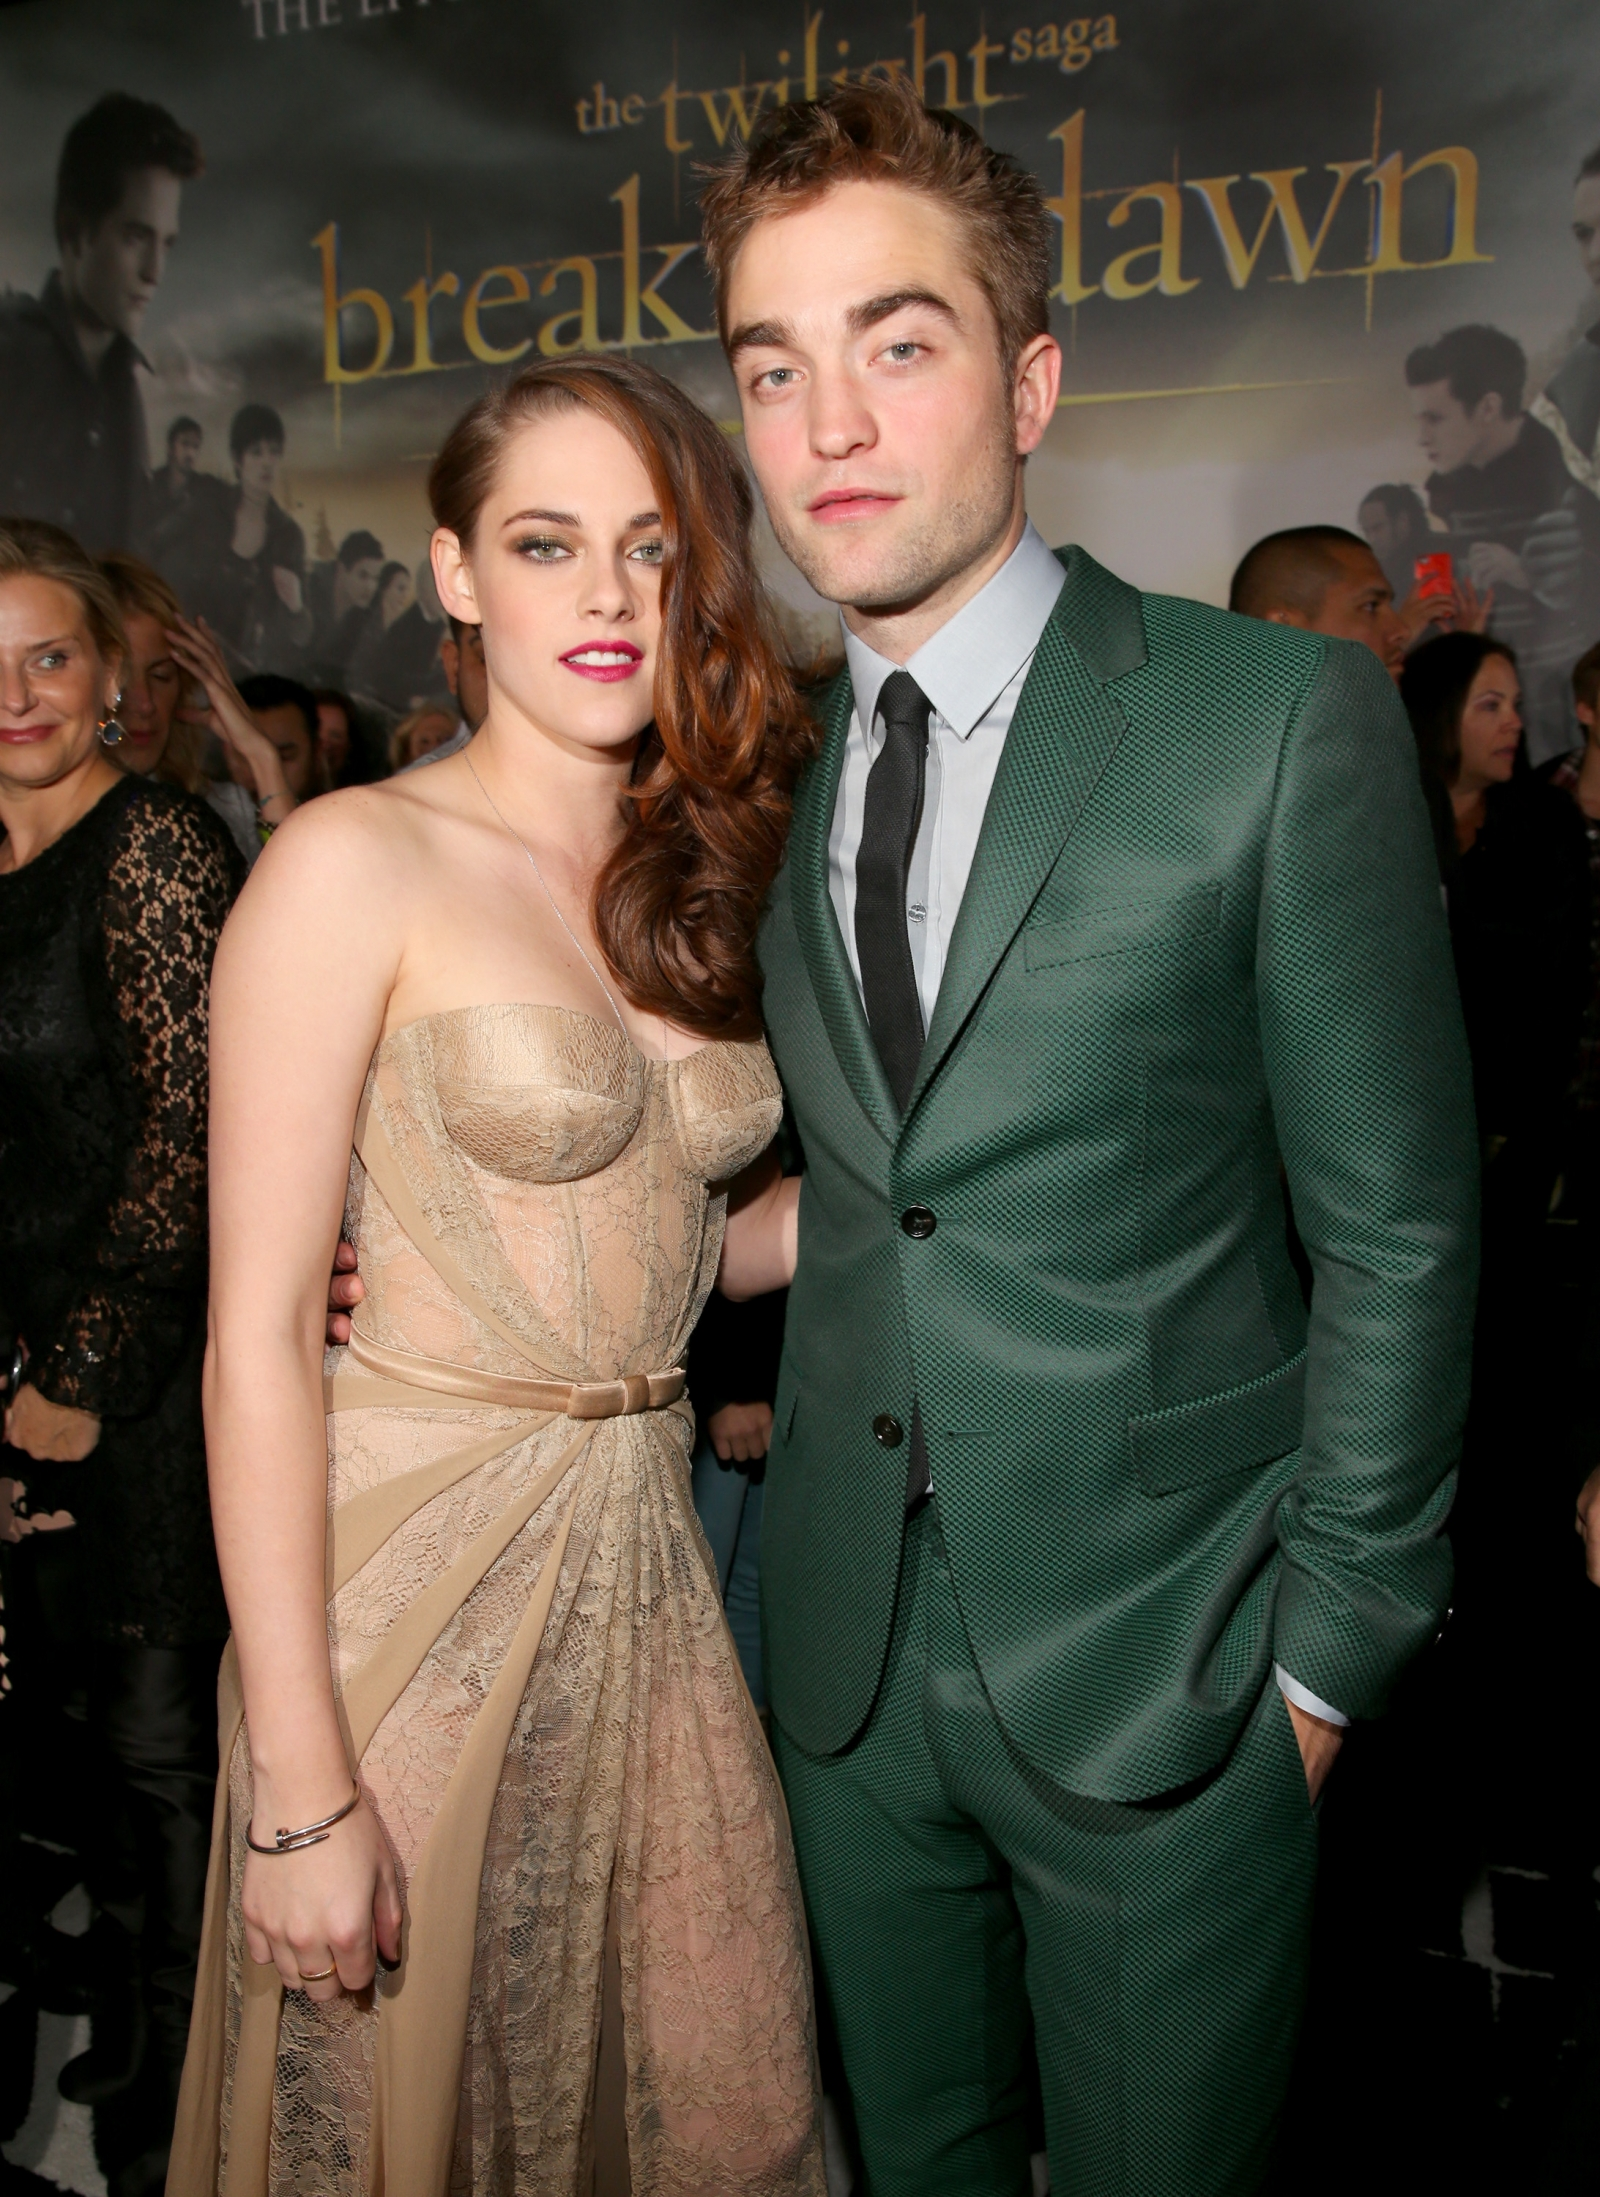 robert pattinson and kristen stewart dating Kristen stewart : voilà des déclarations auxquelles on ne s'attendait pas séparés depuis plusieurs années, kristen stewart a fait des révélations choc sur robert pattinson.